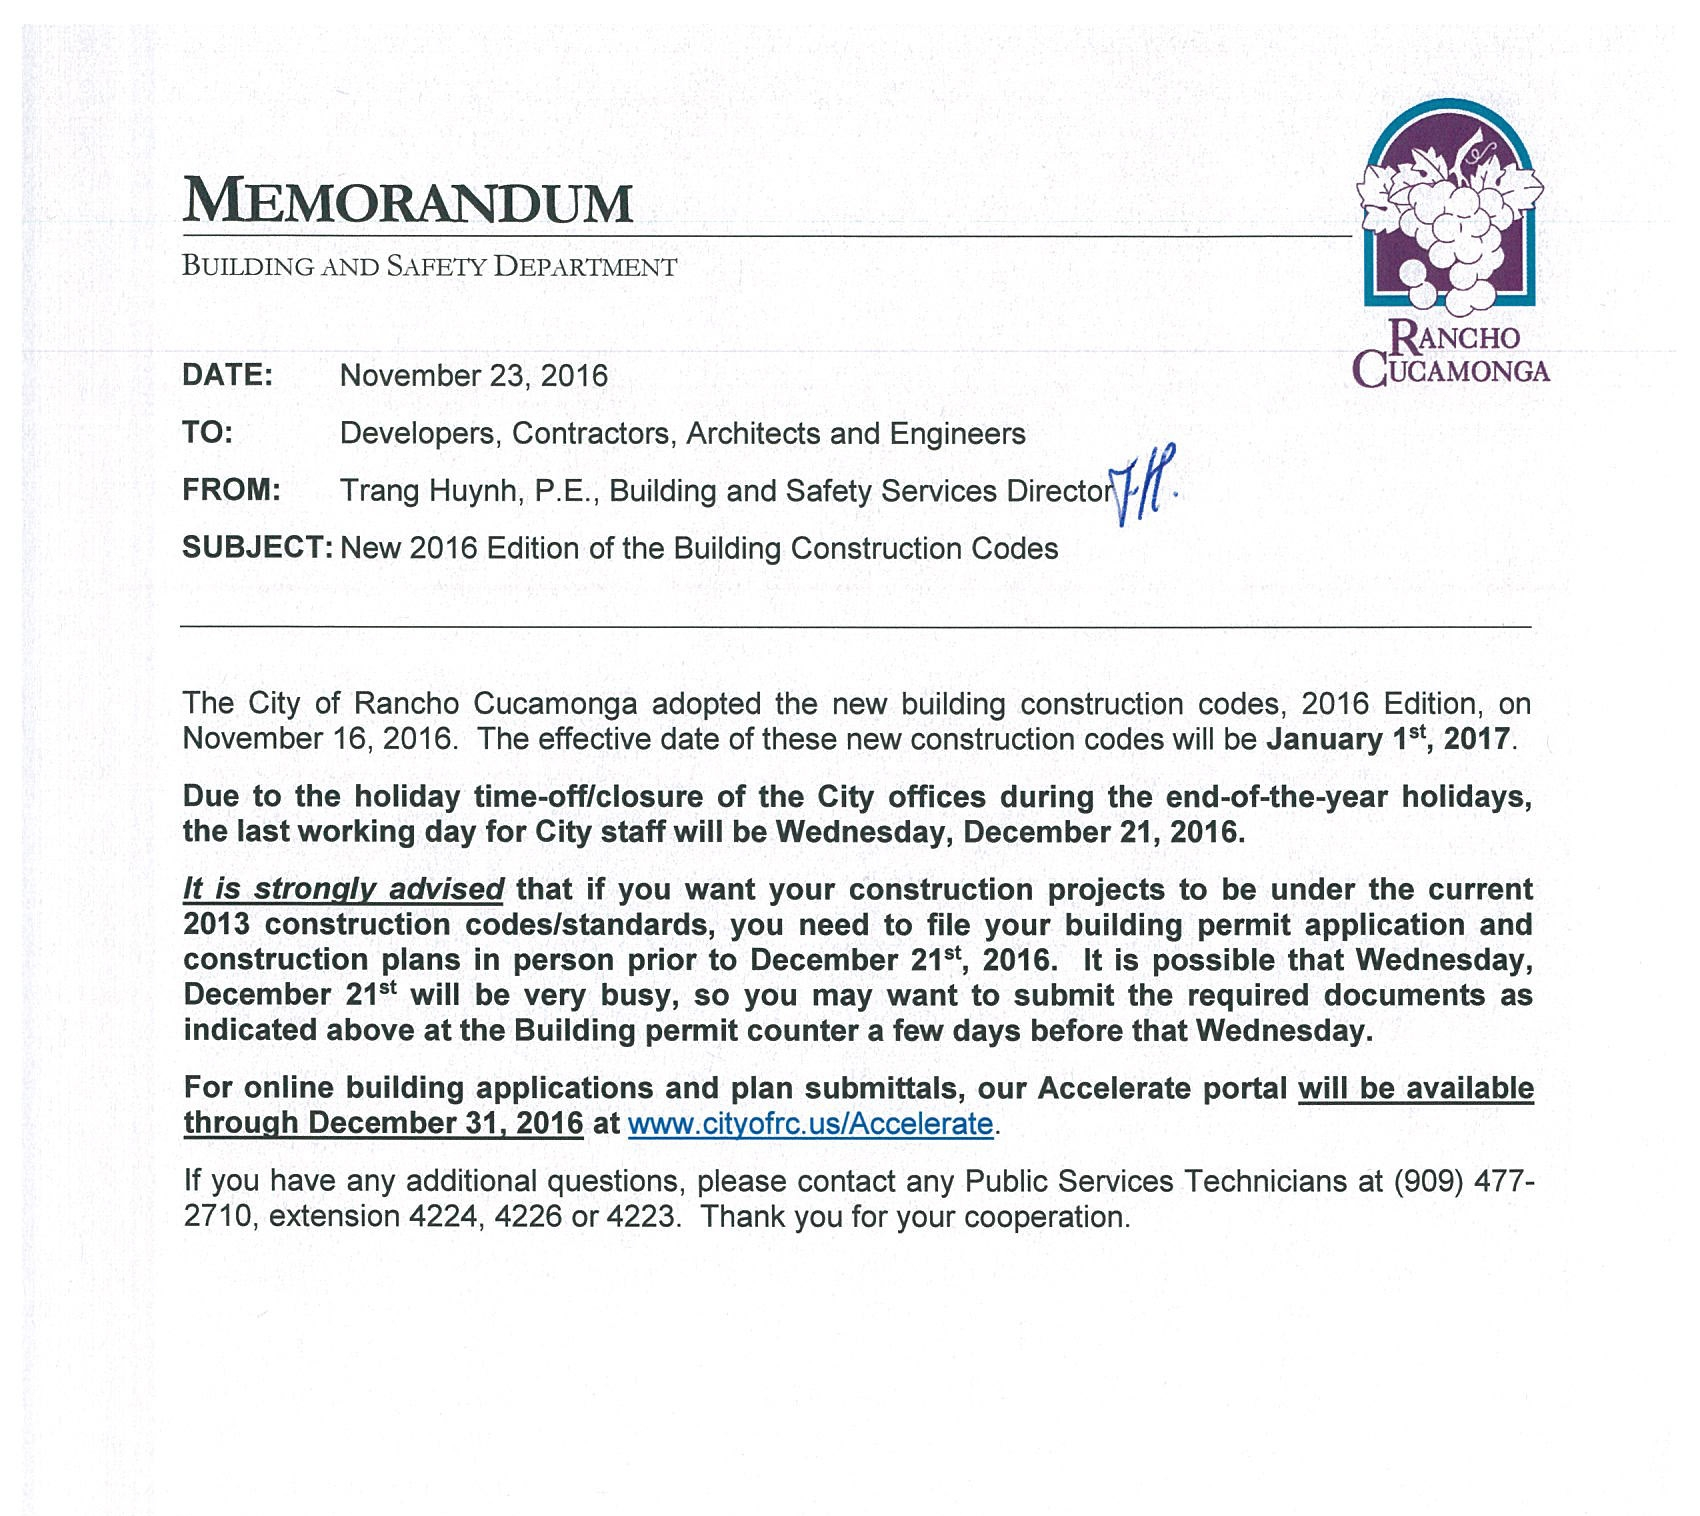 City of Rancho Cucamonga, Building and Safety